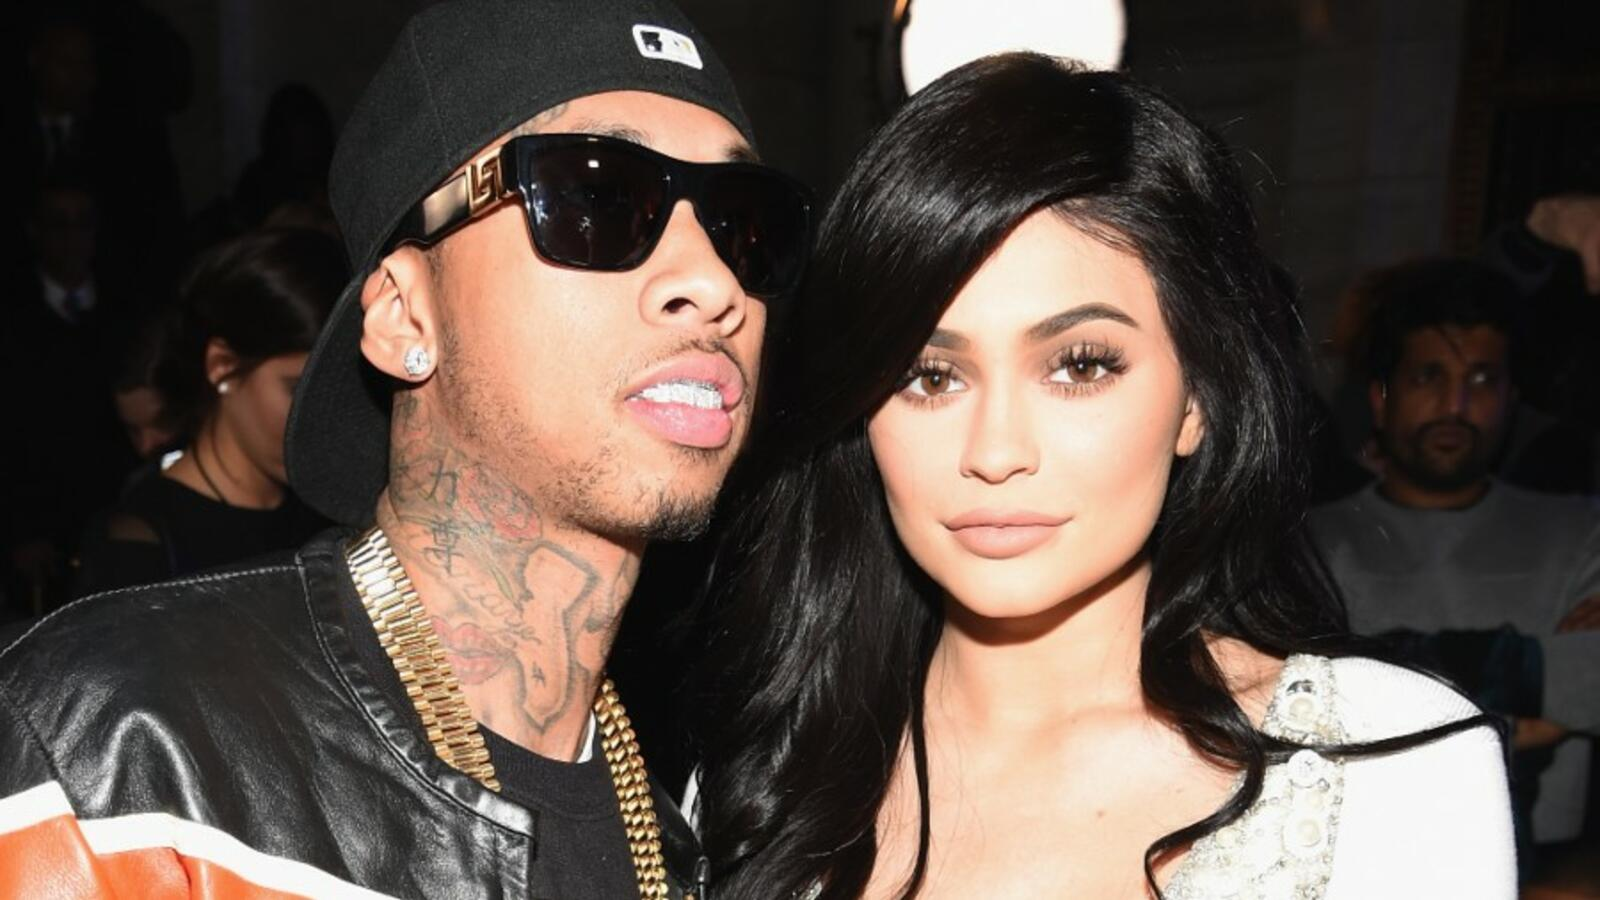 Kylie Jenner Says She & Tyga Are 'Not Friends' Post-Breakup